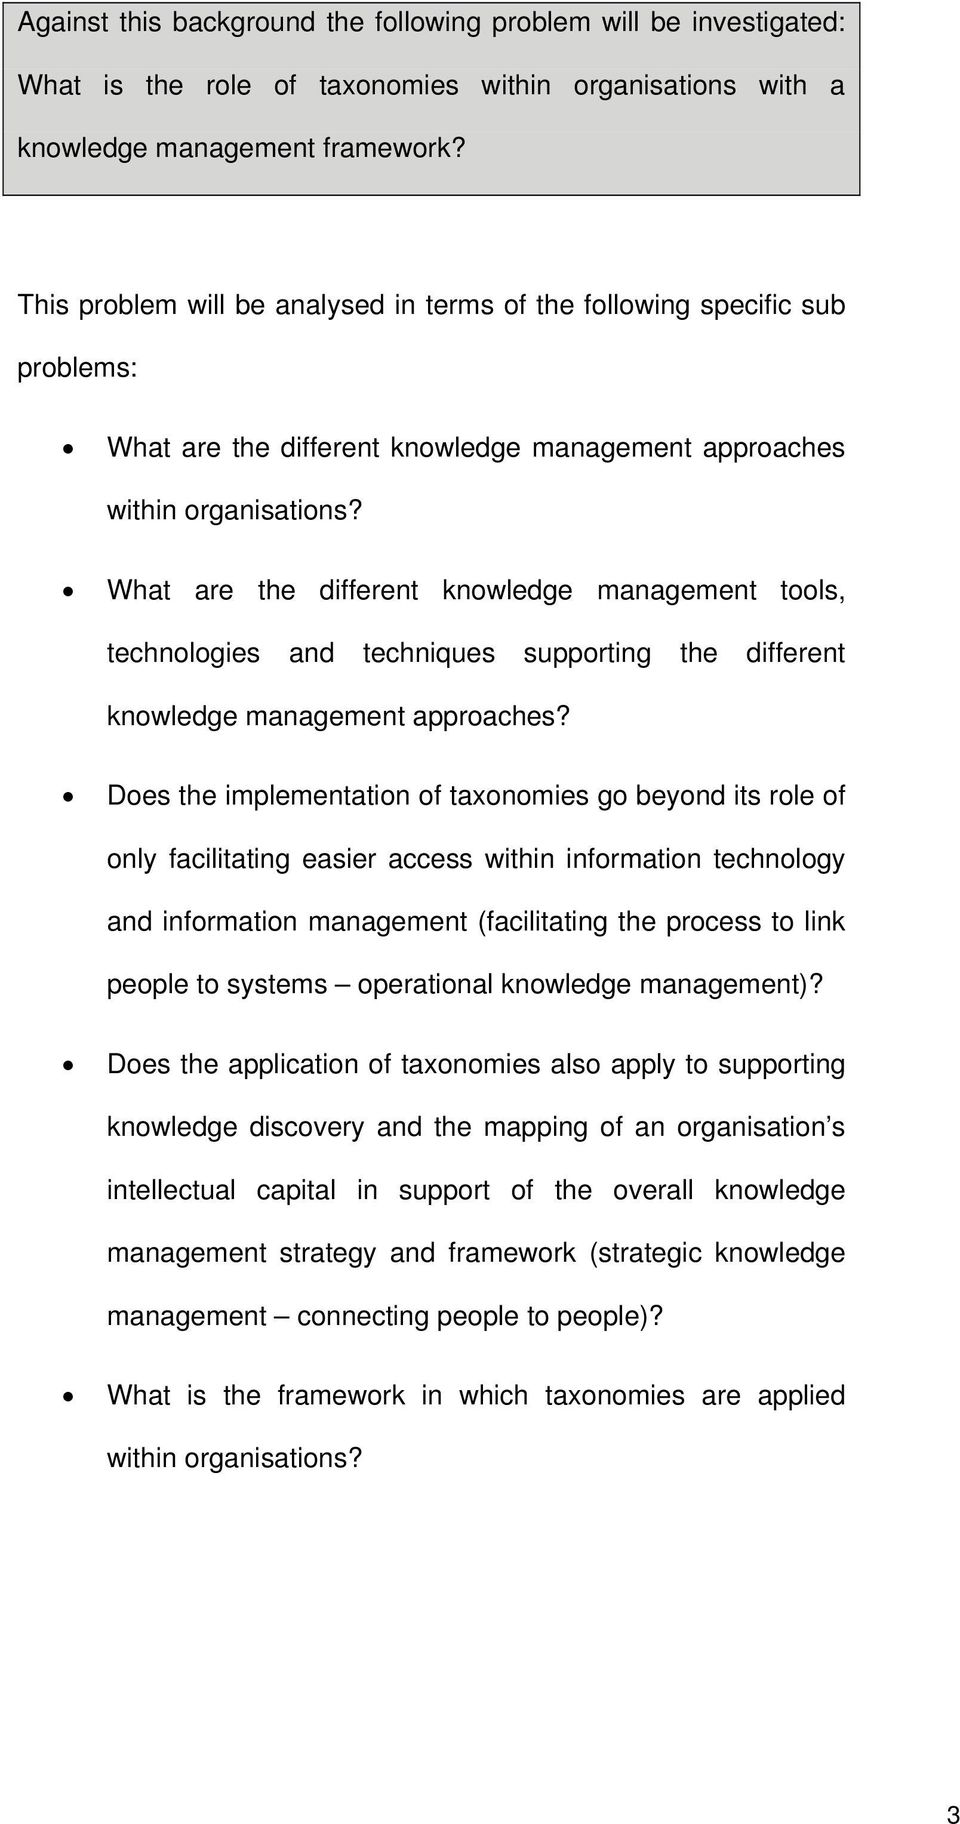 What are the different knowledge management tools, technologies and techniques supporting the different knowledge management approaches?